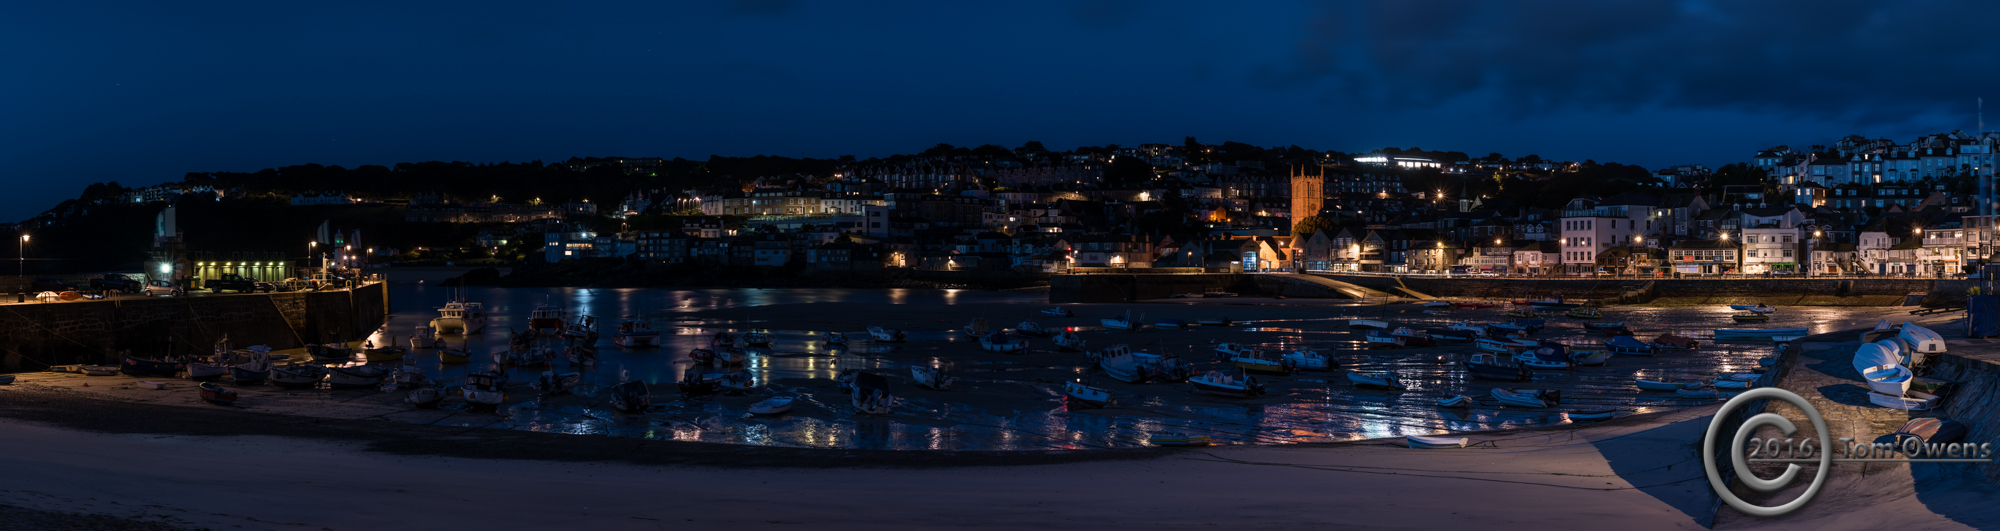 St Ives harbour low tide 50 minutes before sunrise